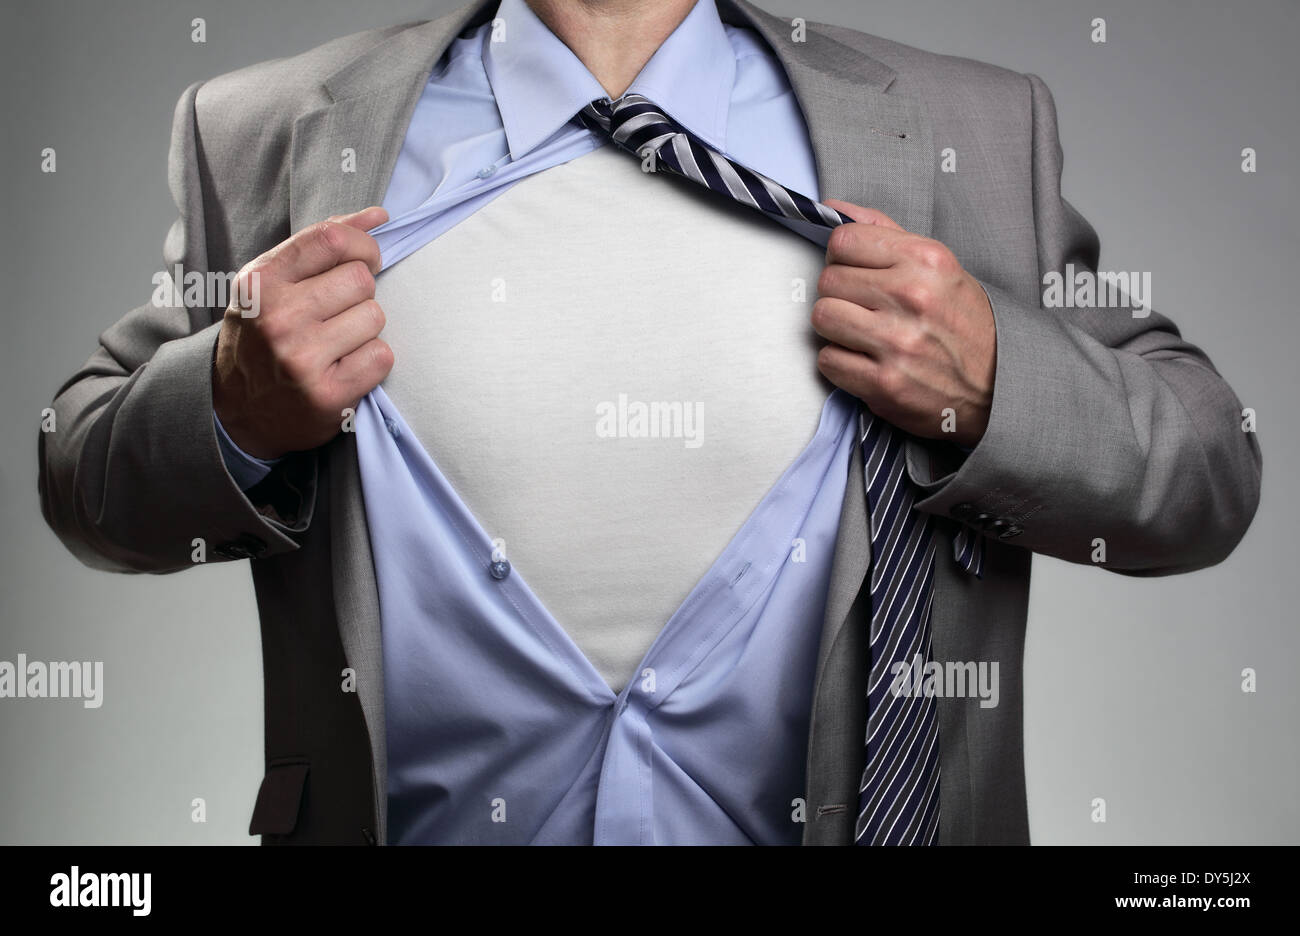 Superhero businessman - Stock Image